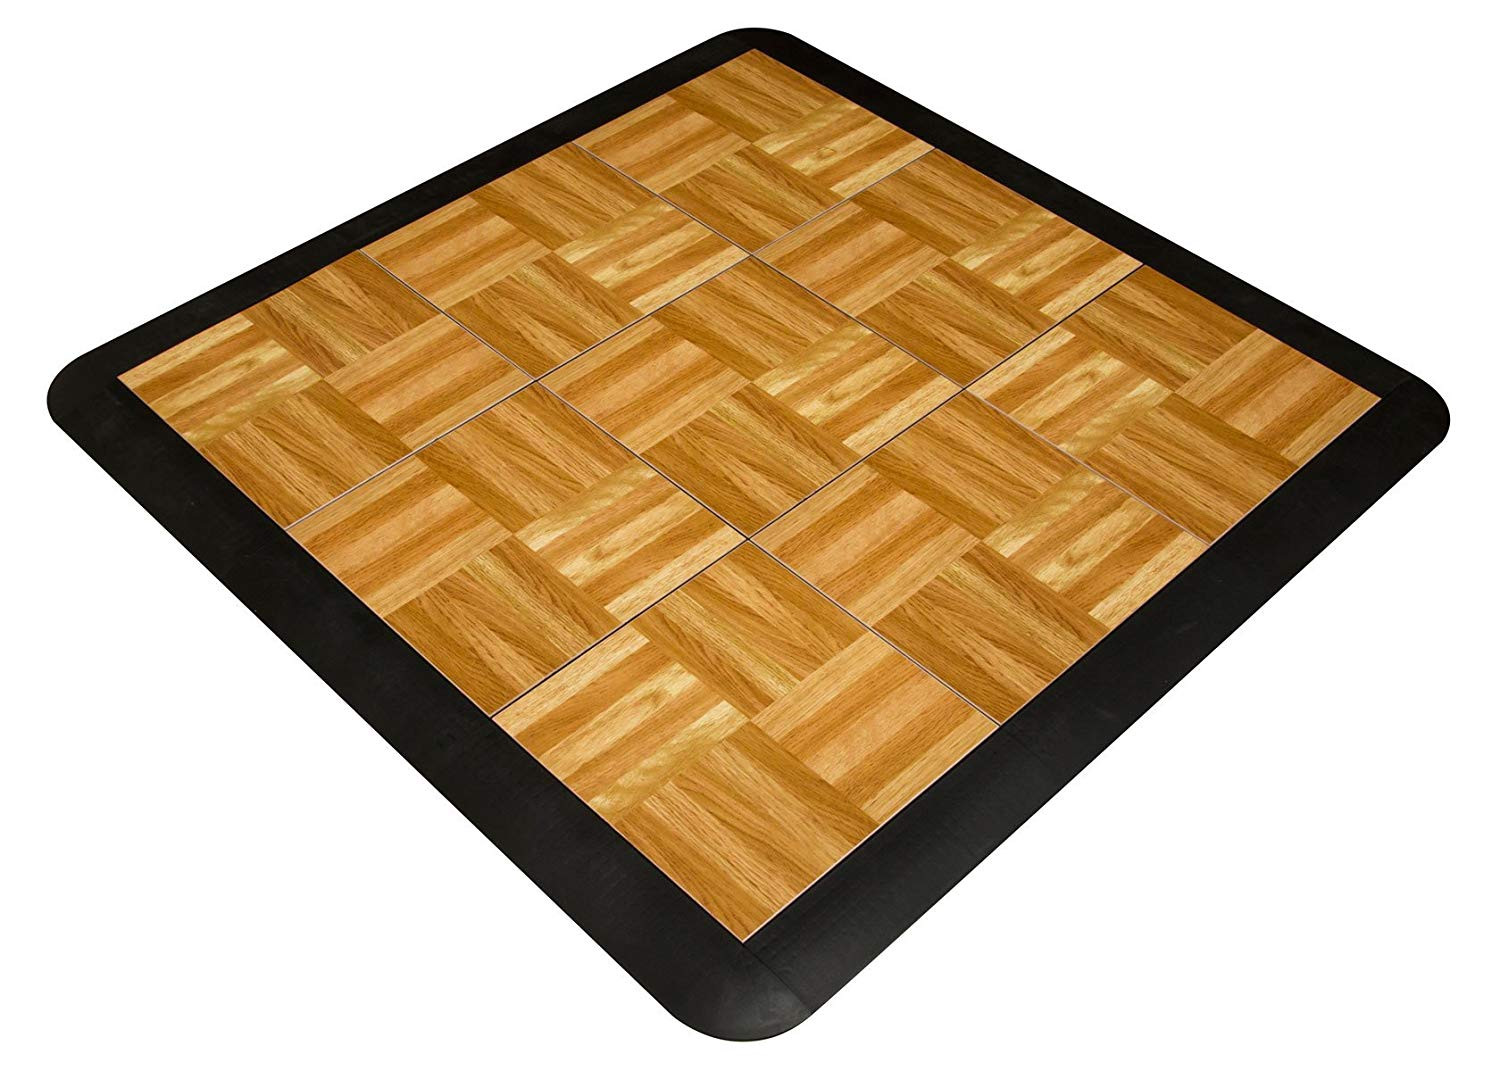 Hardwood Flooring Square Foot Price Of Snapfloors 3x3oakfloor Modular Dance Floor Kit 3 X 3 Oak 21 Throughout Snapfloors 3x3oakfloor Modular Dance Floor Kit 3 X 3 Oak 21 Piece Amazon Com